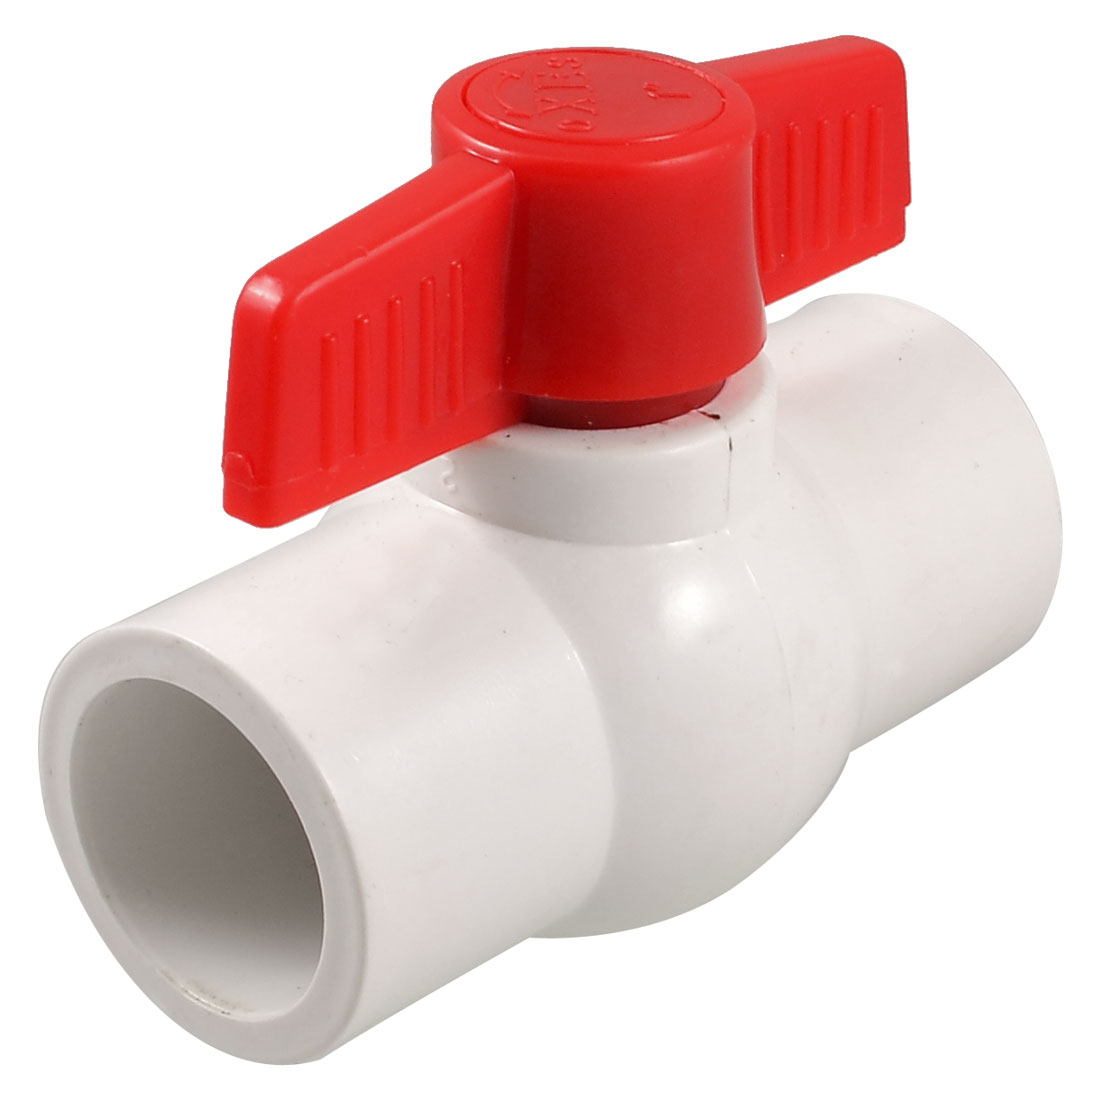 "1.3"" x 1.3"" Slip Ends Two Way Ports PVC Ball Valve White Red"